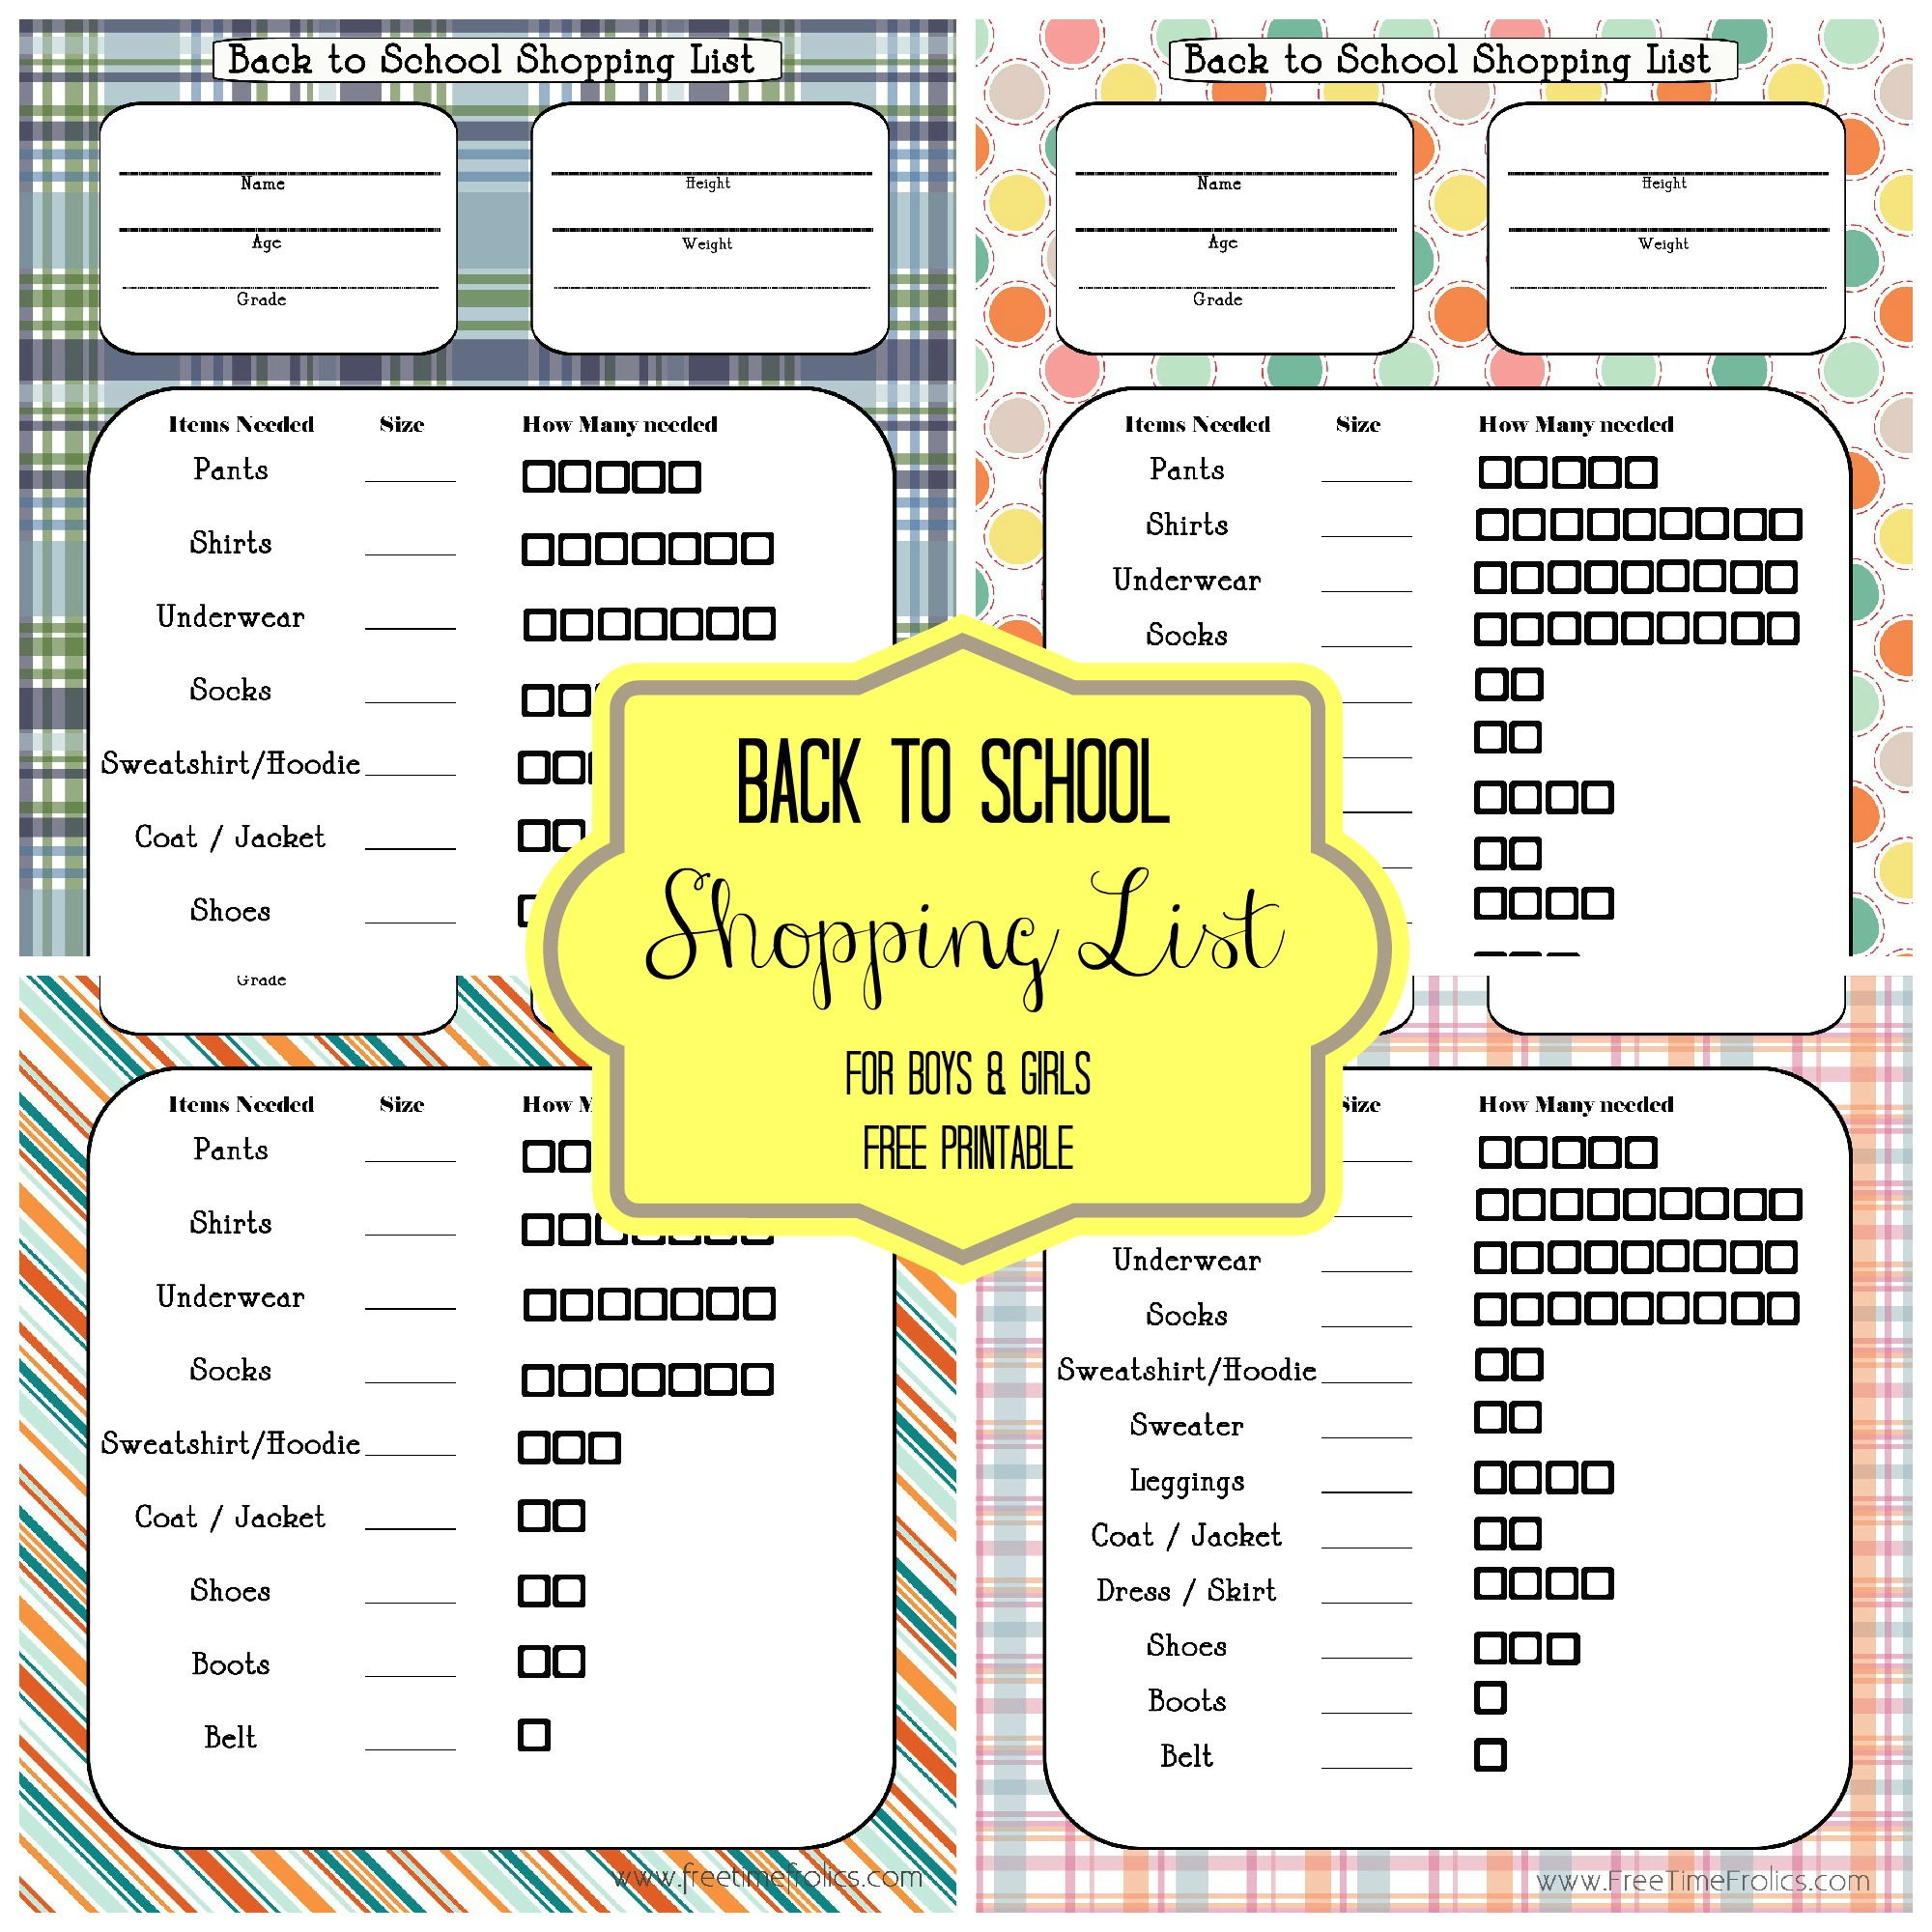 Back To School Blast Shopping List Free Printable Giveaway